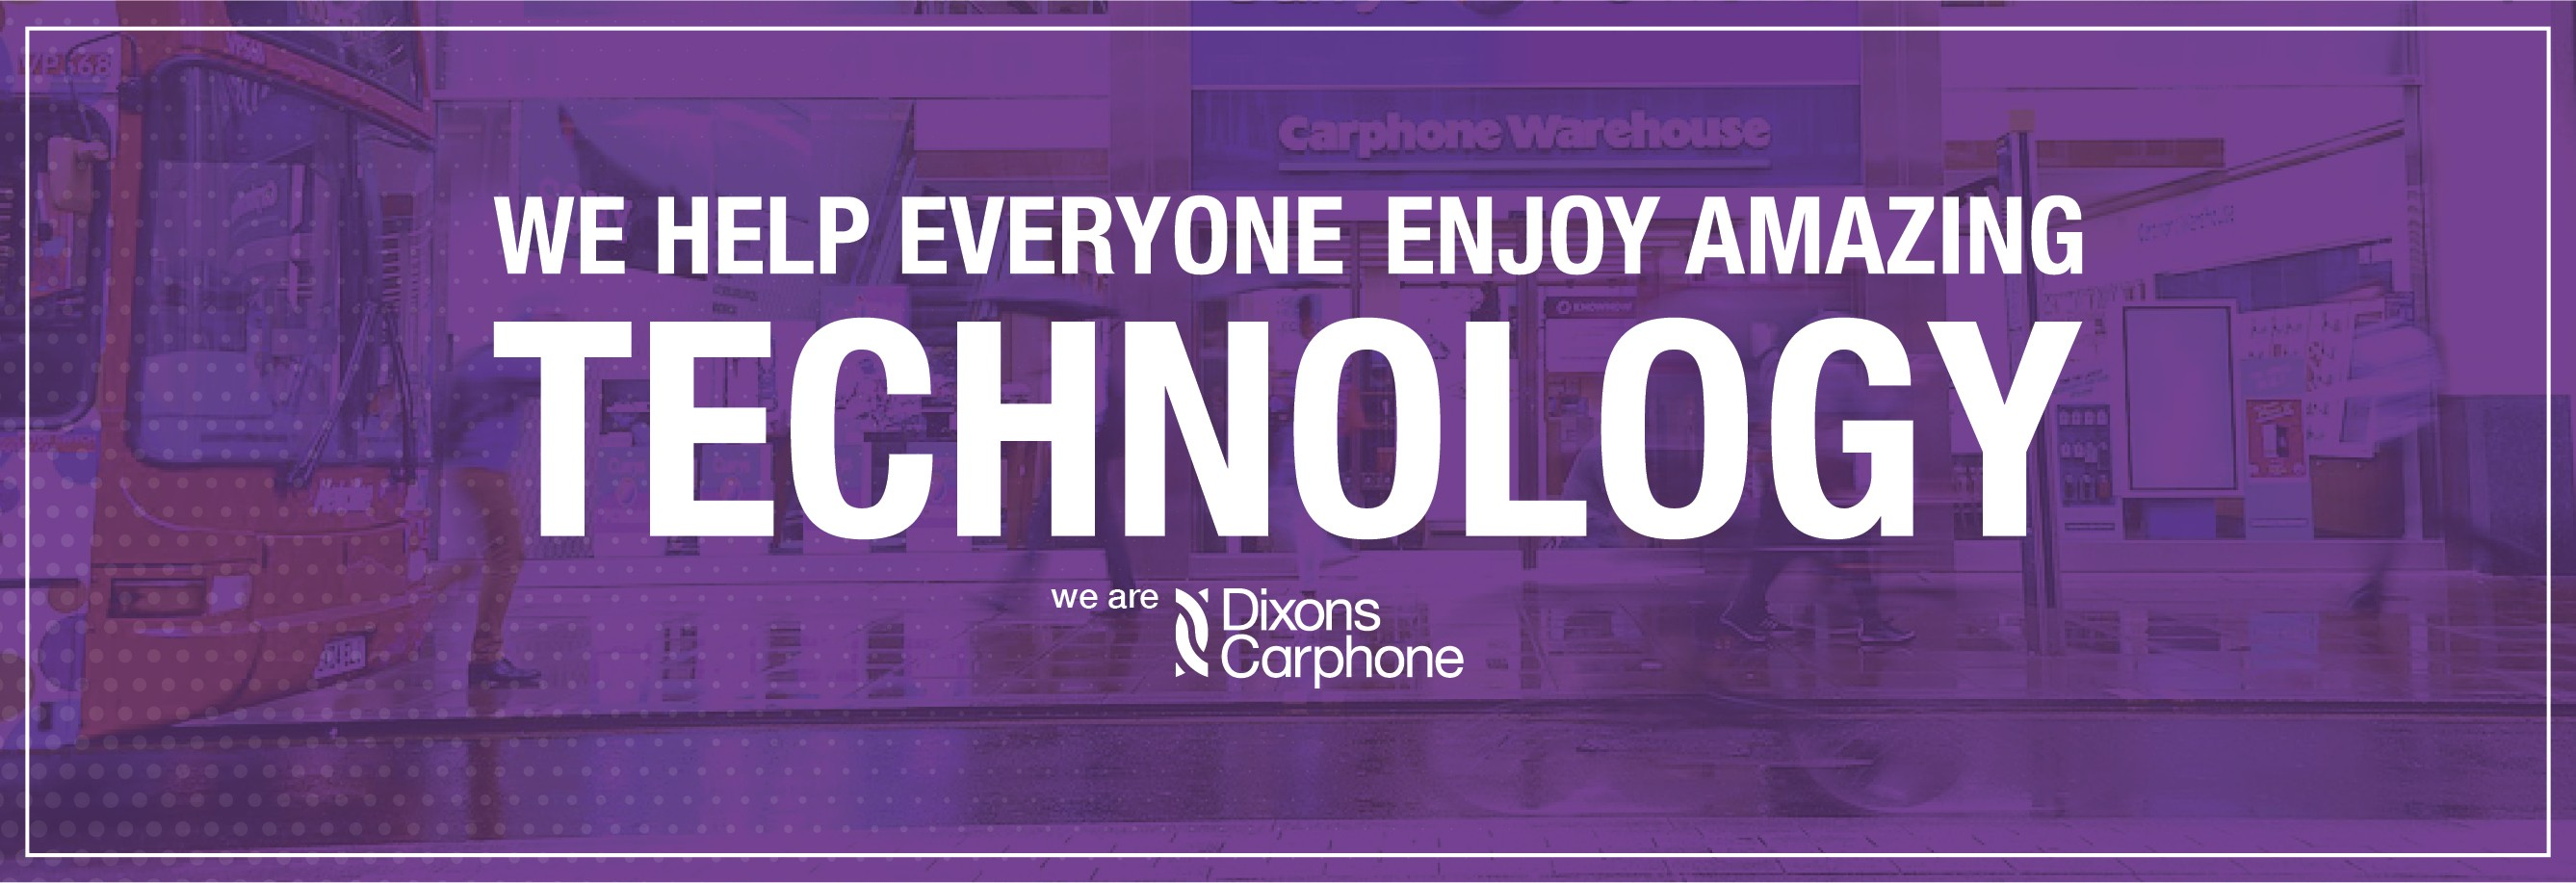 Dixons Carphone | LinkedIn